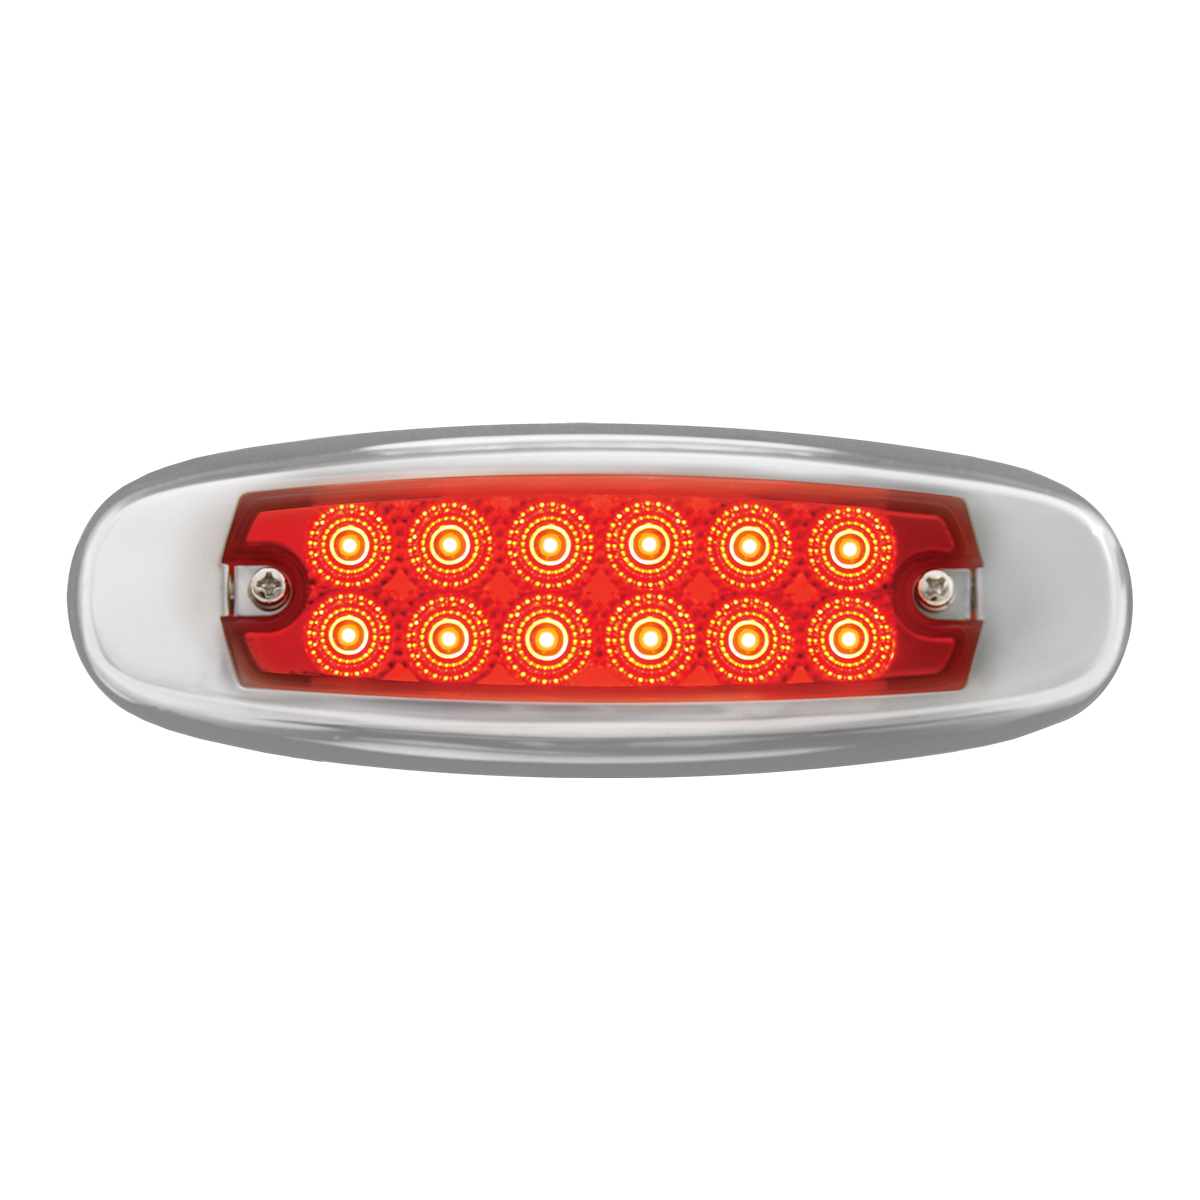 76442 Ultra Thin Dual Function Spyder LED Light w/ Stainless Steel Bezel